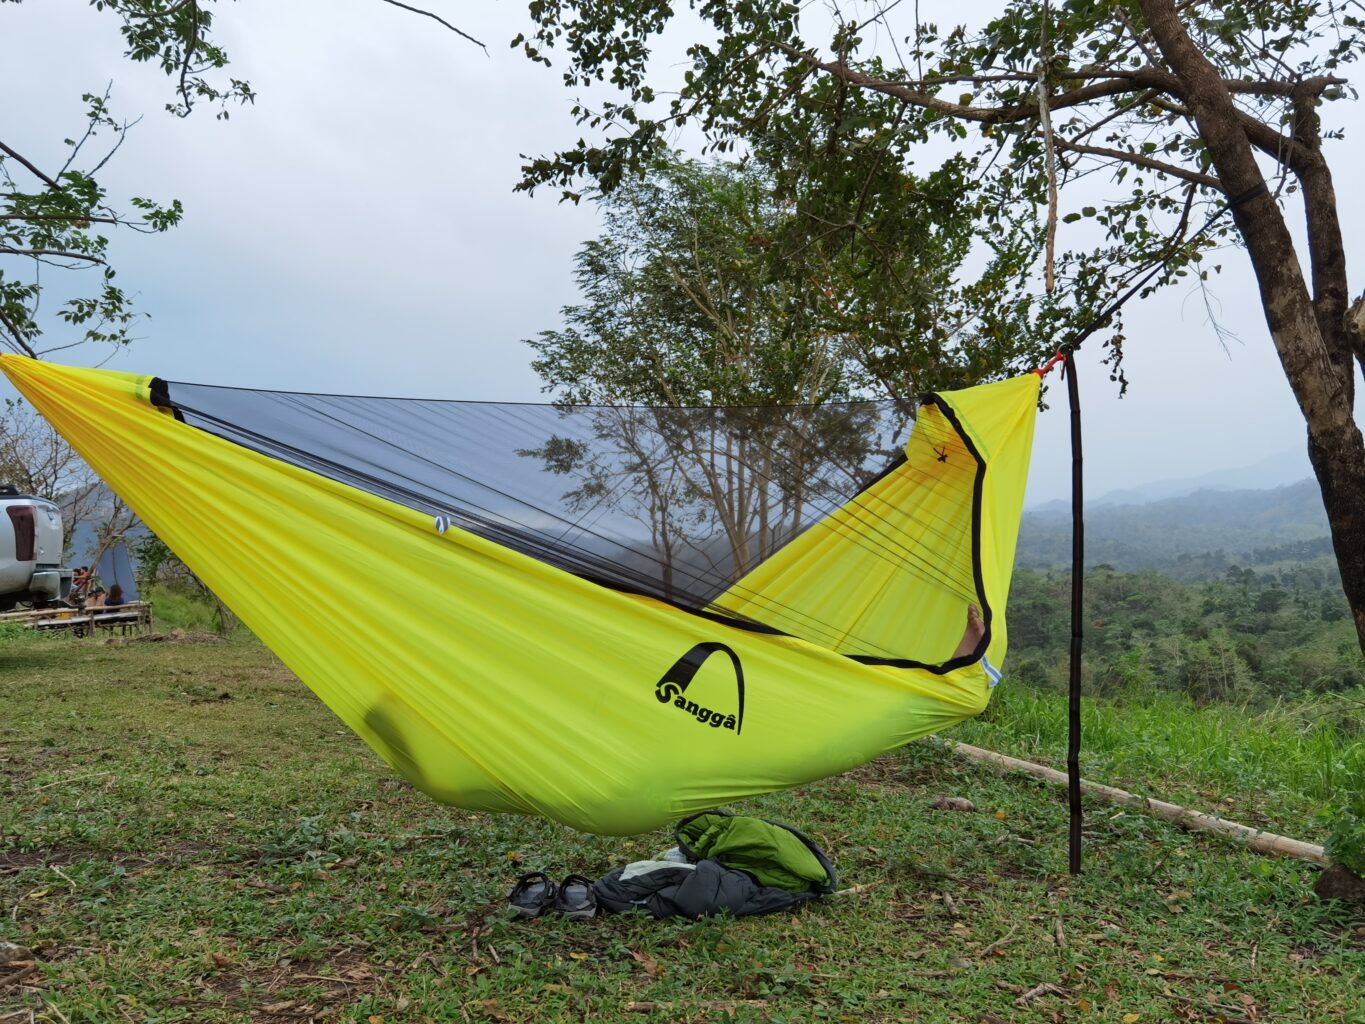 You can barely notice the bugnet in Sangga Outdoors' Ora 11